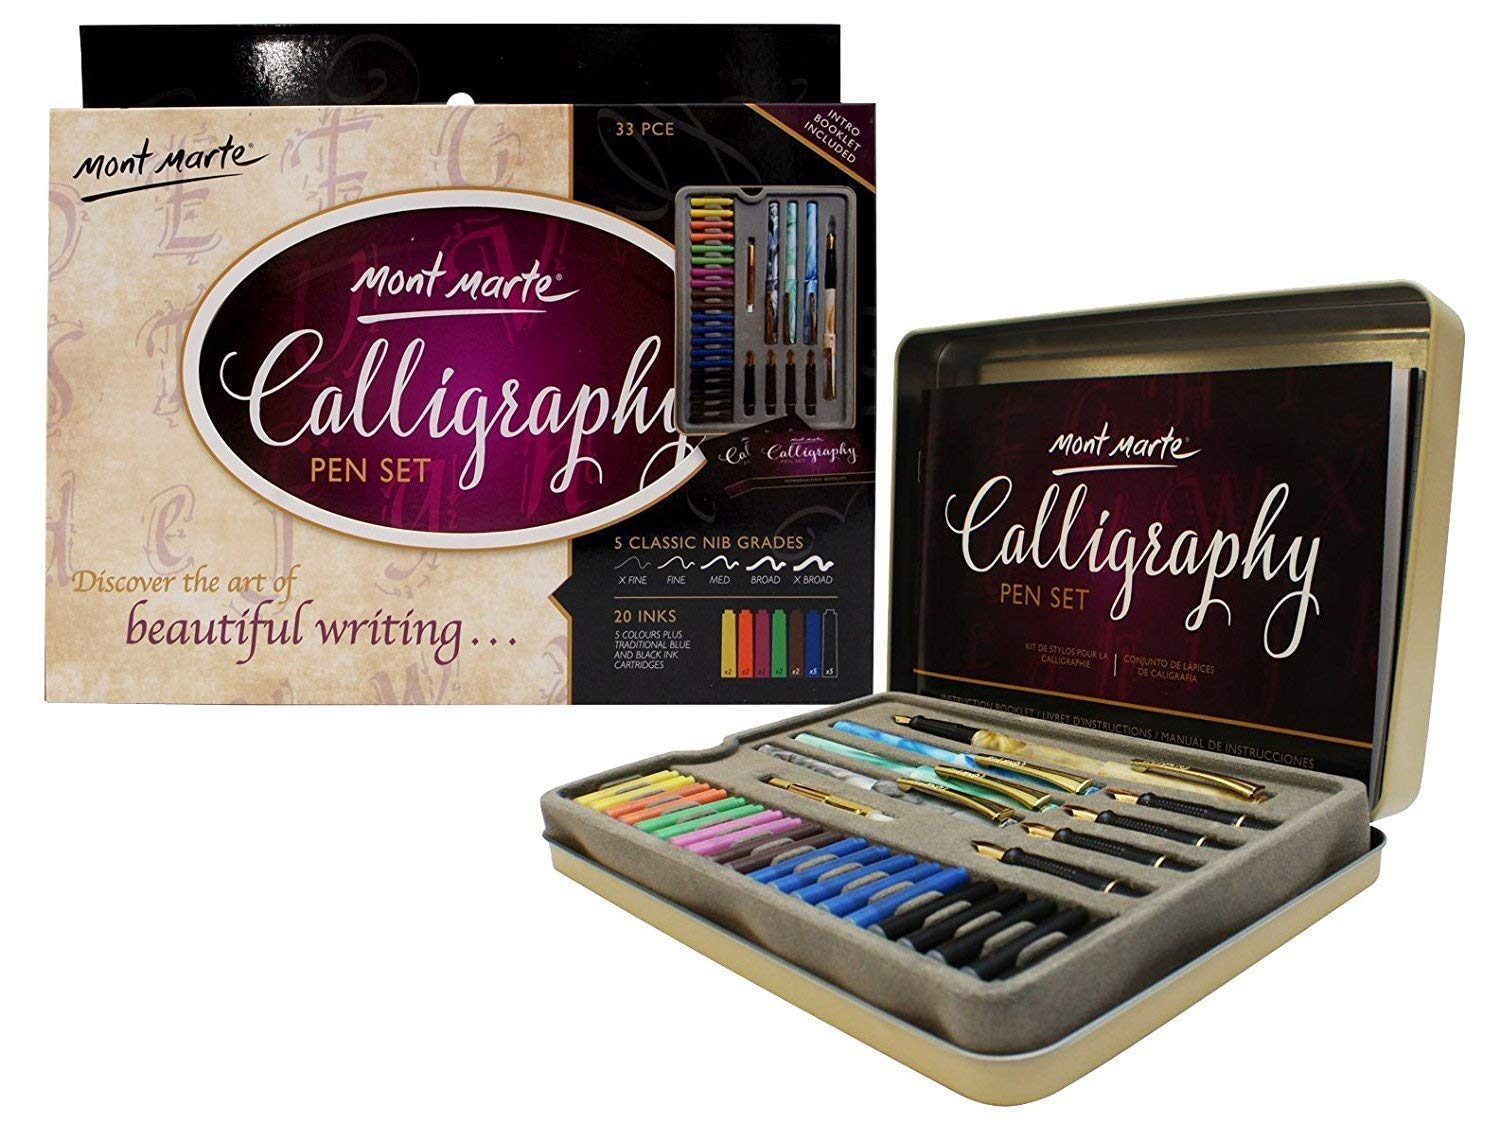 Mont Marte Calligraphy Set, 33 Piece. Includes Calligraphy Pens, Calligraphy Nibs, Ink Cartridges, Introduction Booklet and Exercise Booklet. by Mont Marte